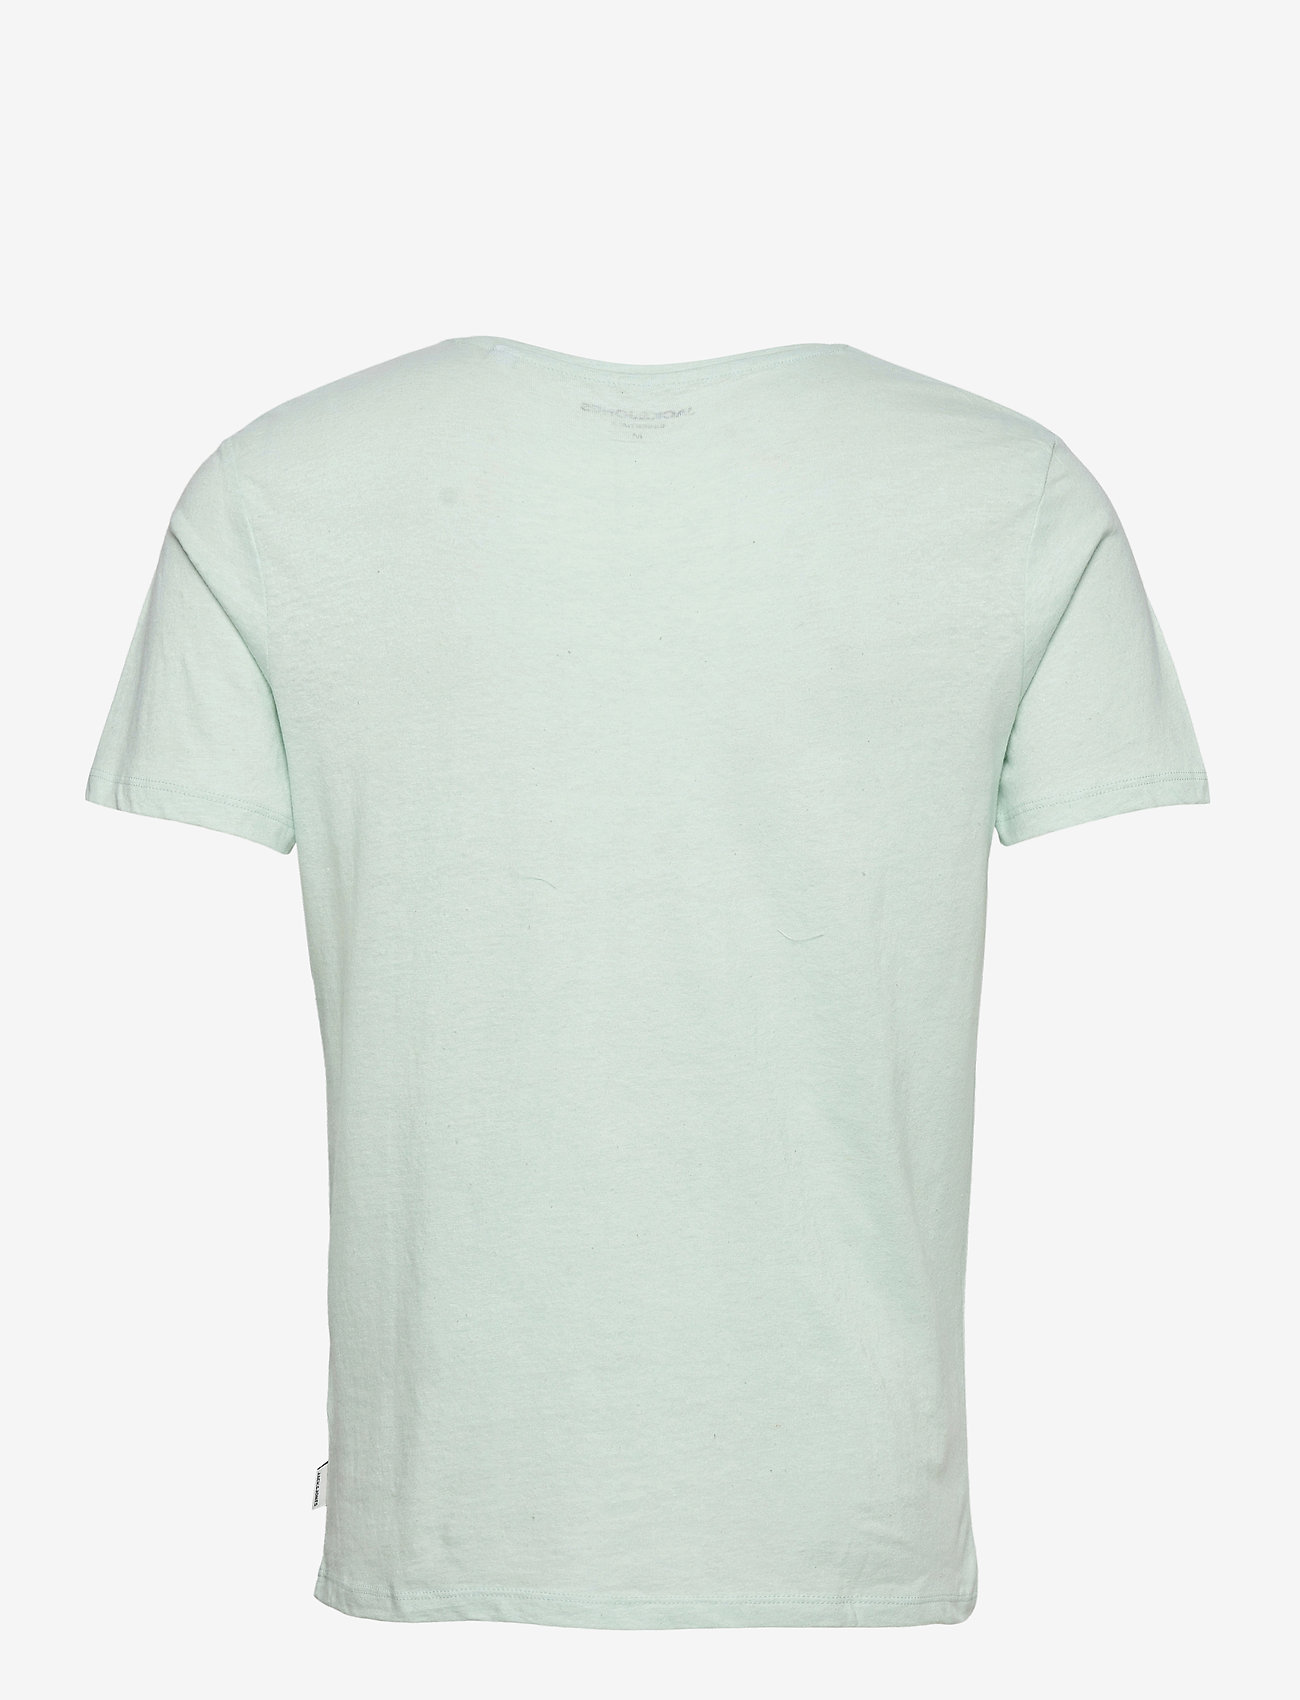 Jack & Jones - JJELINEN BASIC TEE SS CREW NECK STS - basic t-shirts - bleached aqua - 1